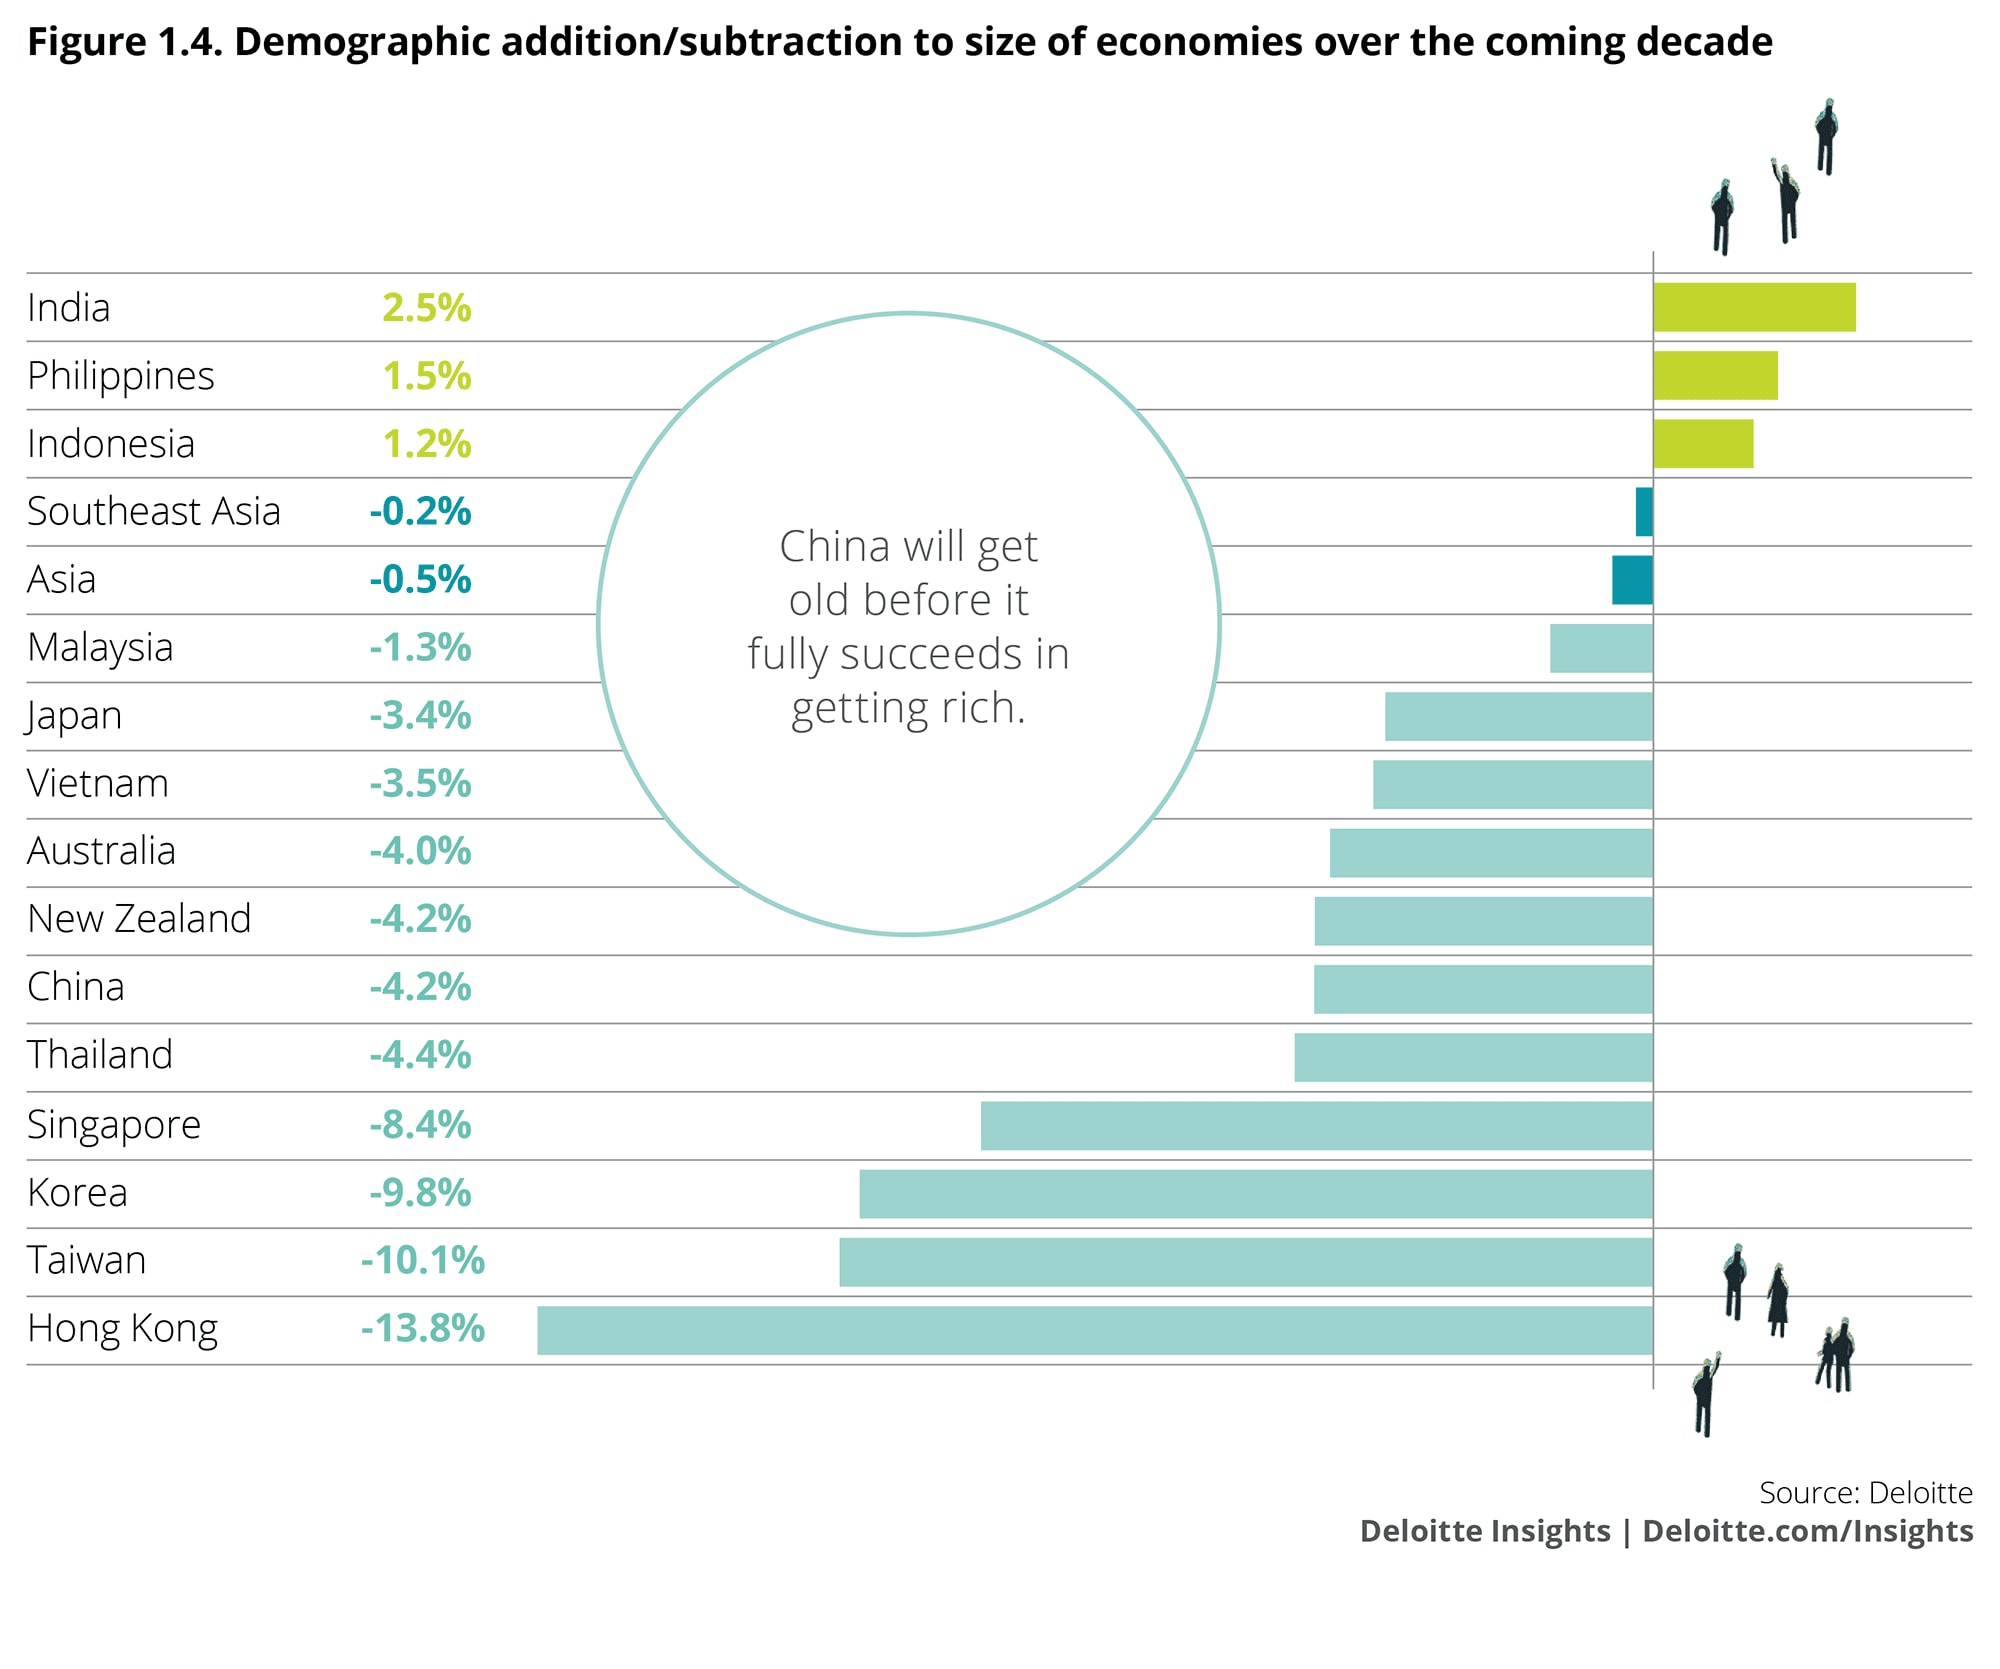 Demographic addition/subtraction to the size of economies over the coming decade